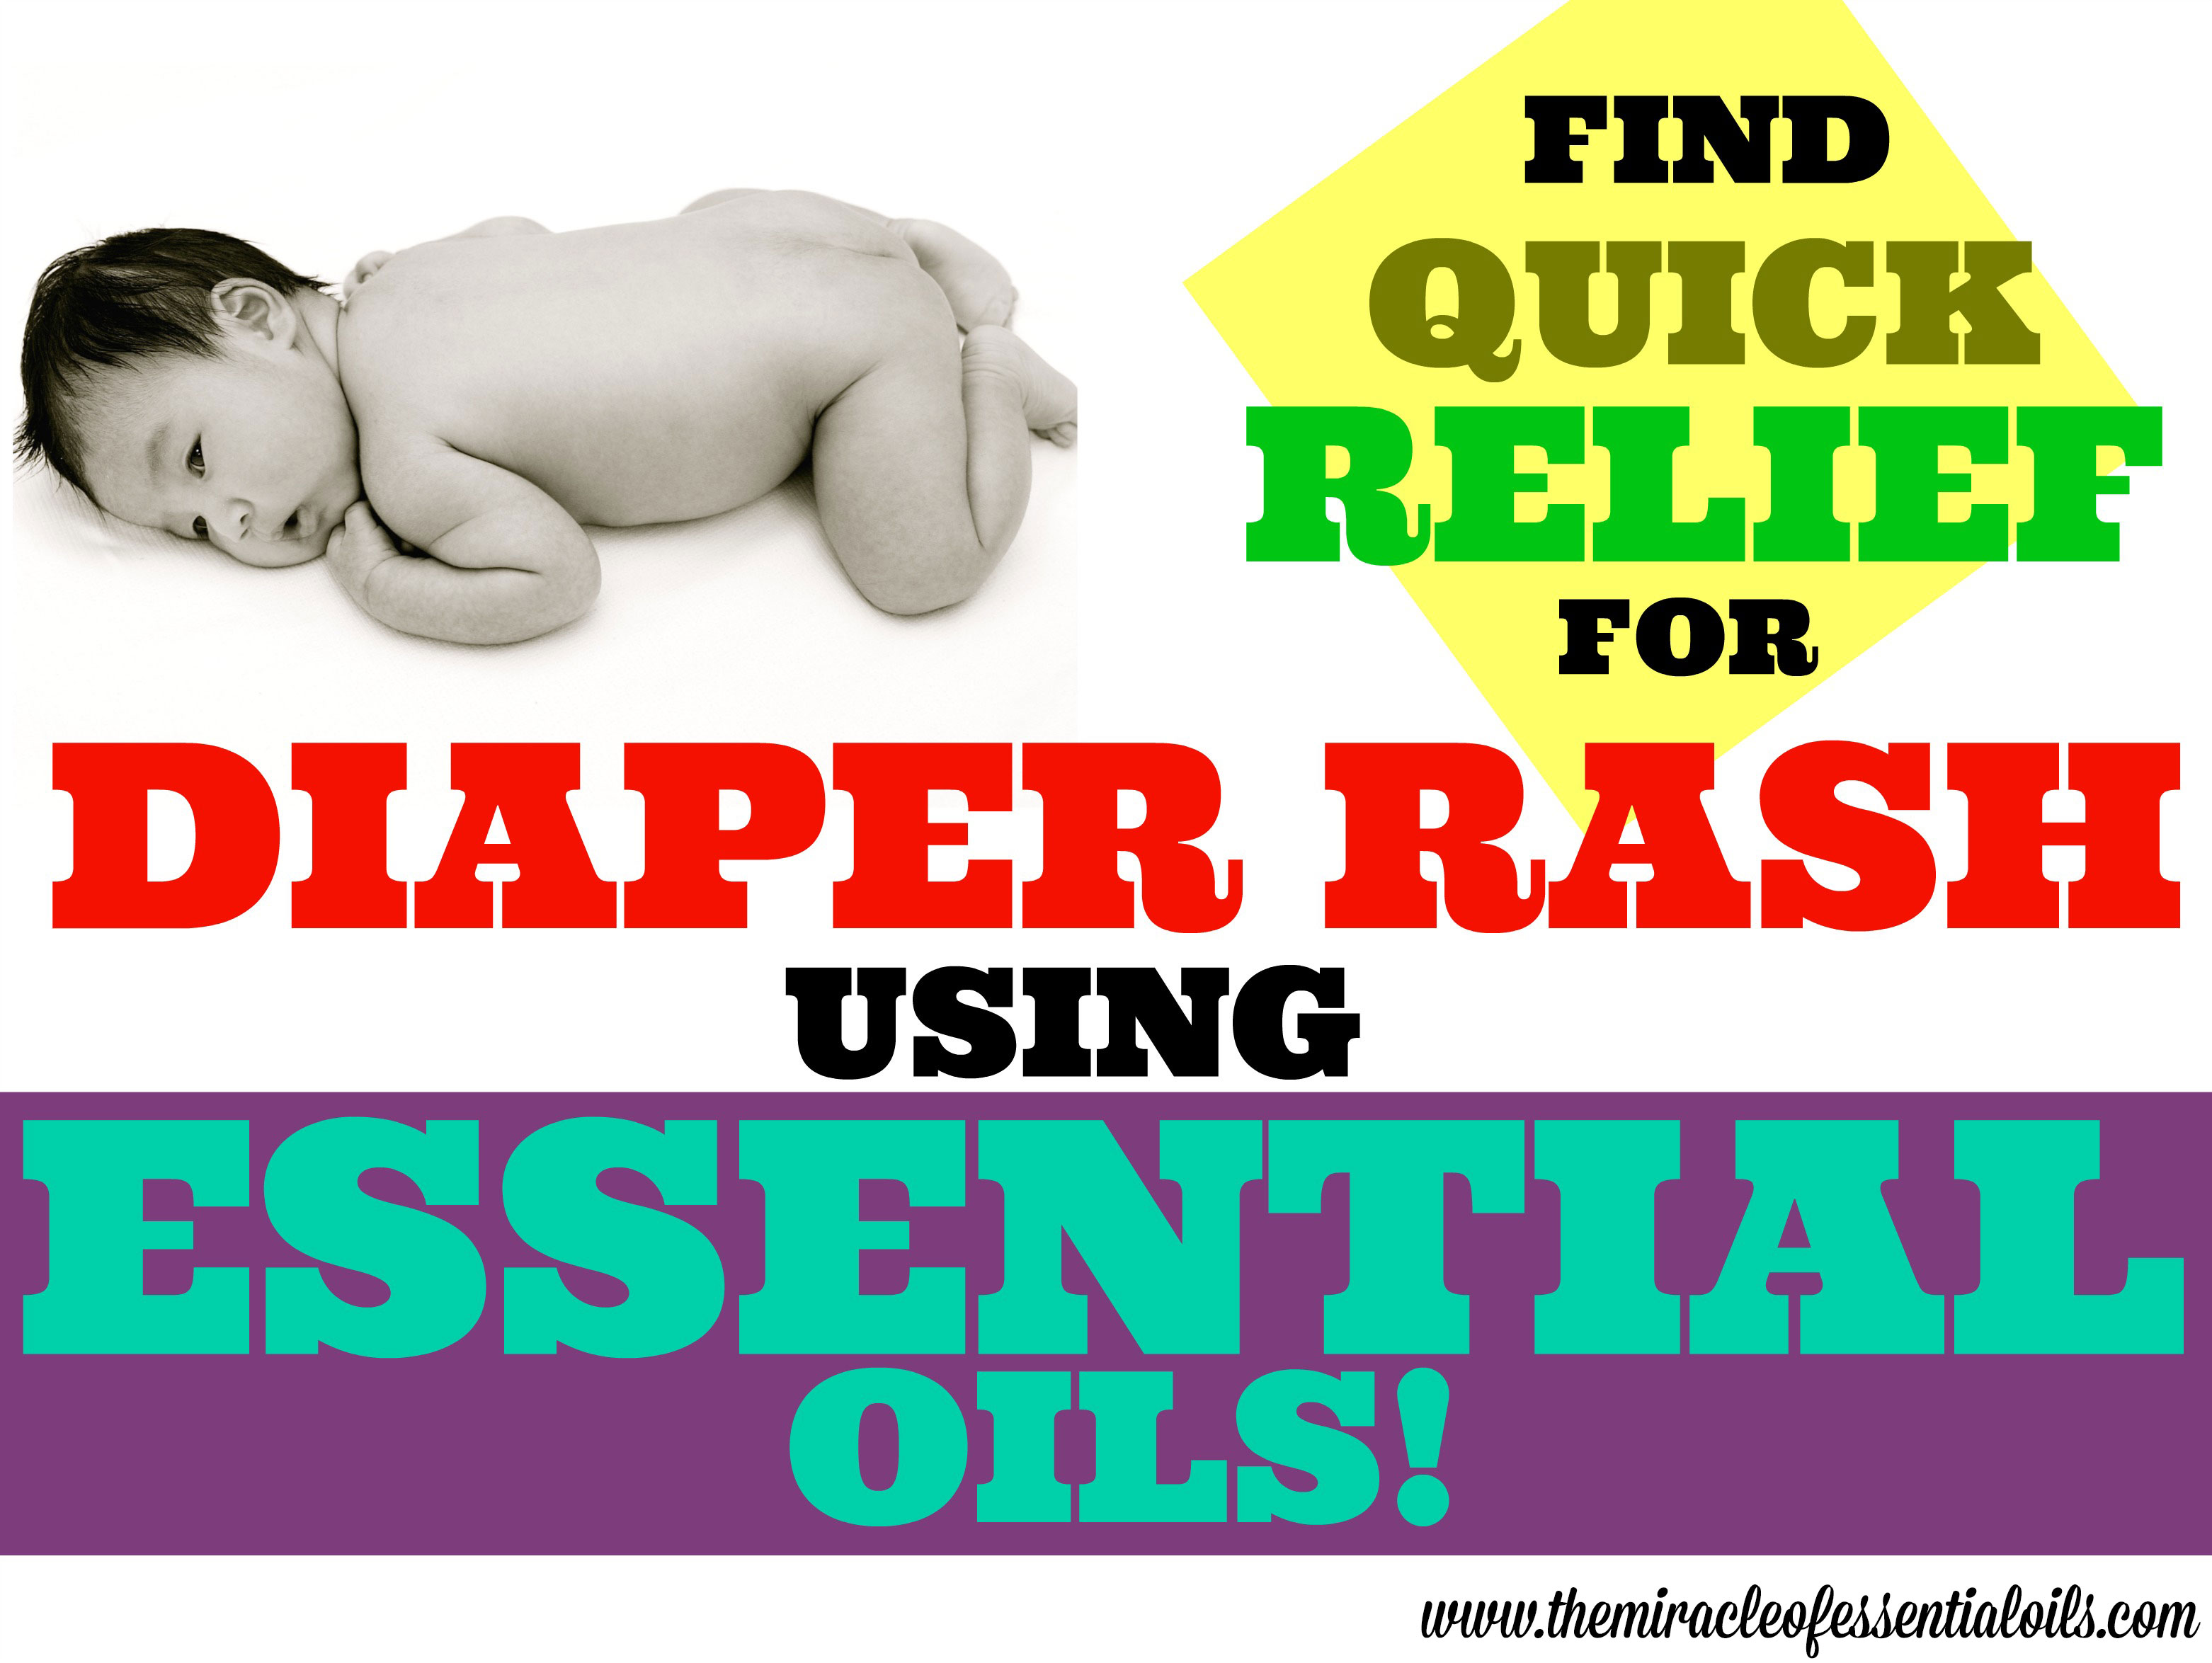 Top 5 Essential Oils For Diaper Rash In Babies Essentialoilsfordiaperrashrelief